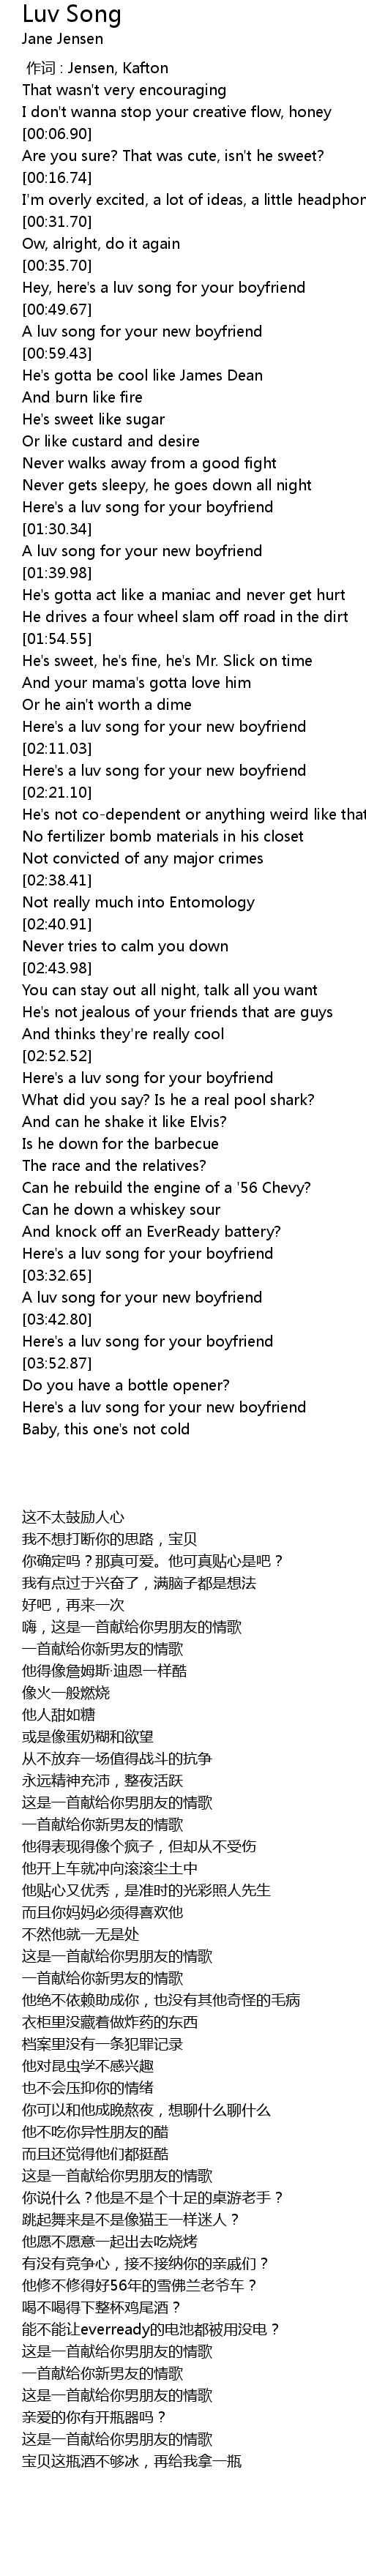 You have a boyfriend song